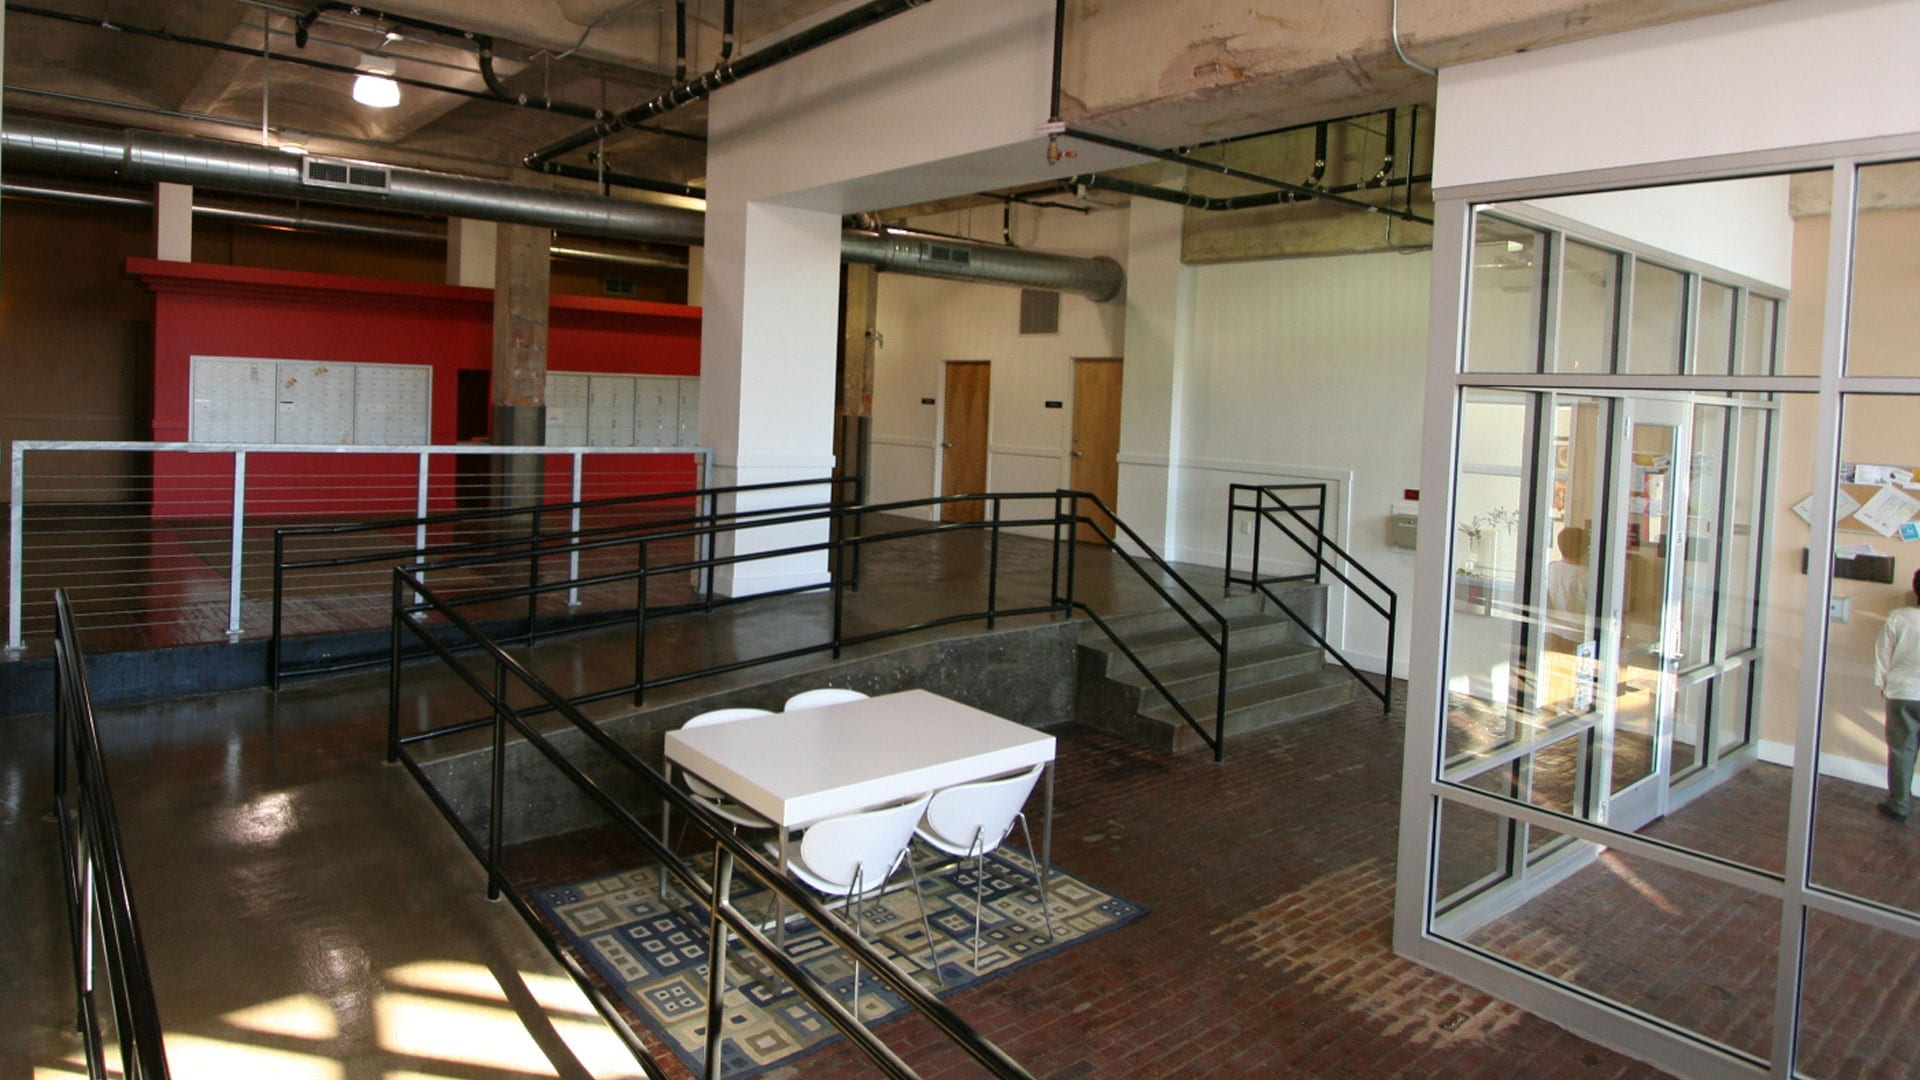 Tanning Beds For Sale >> Stuart Hall - Kansas City Lofts, Condos and Apartments ...